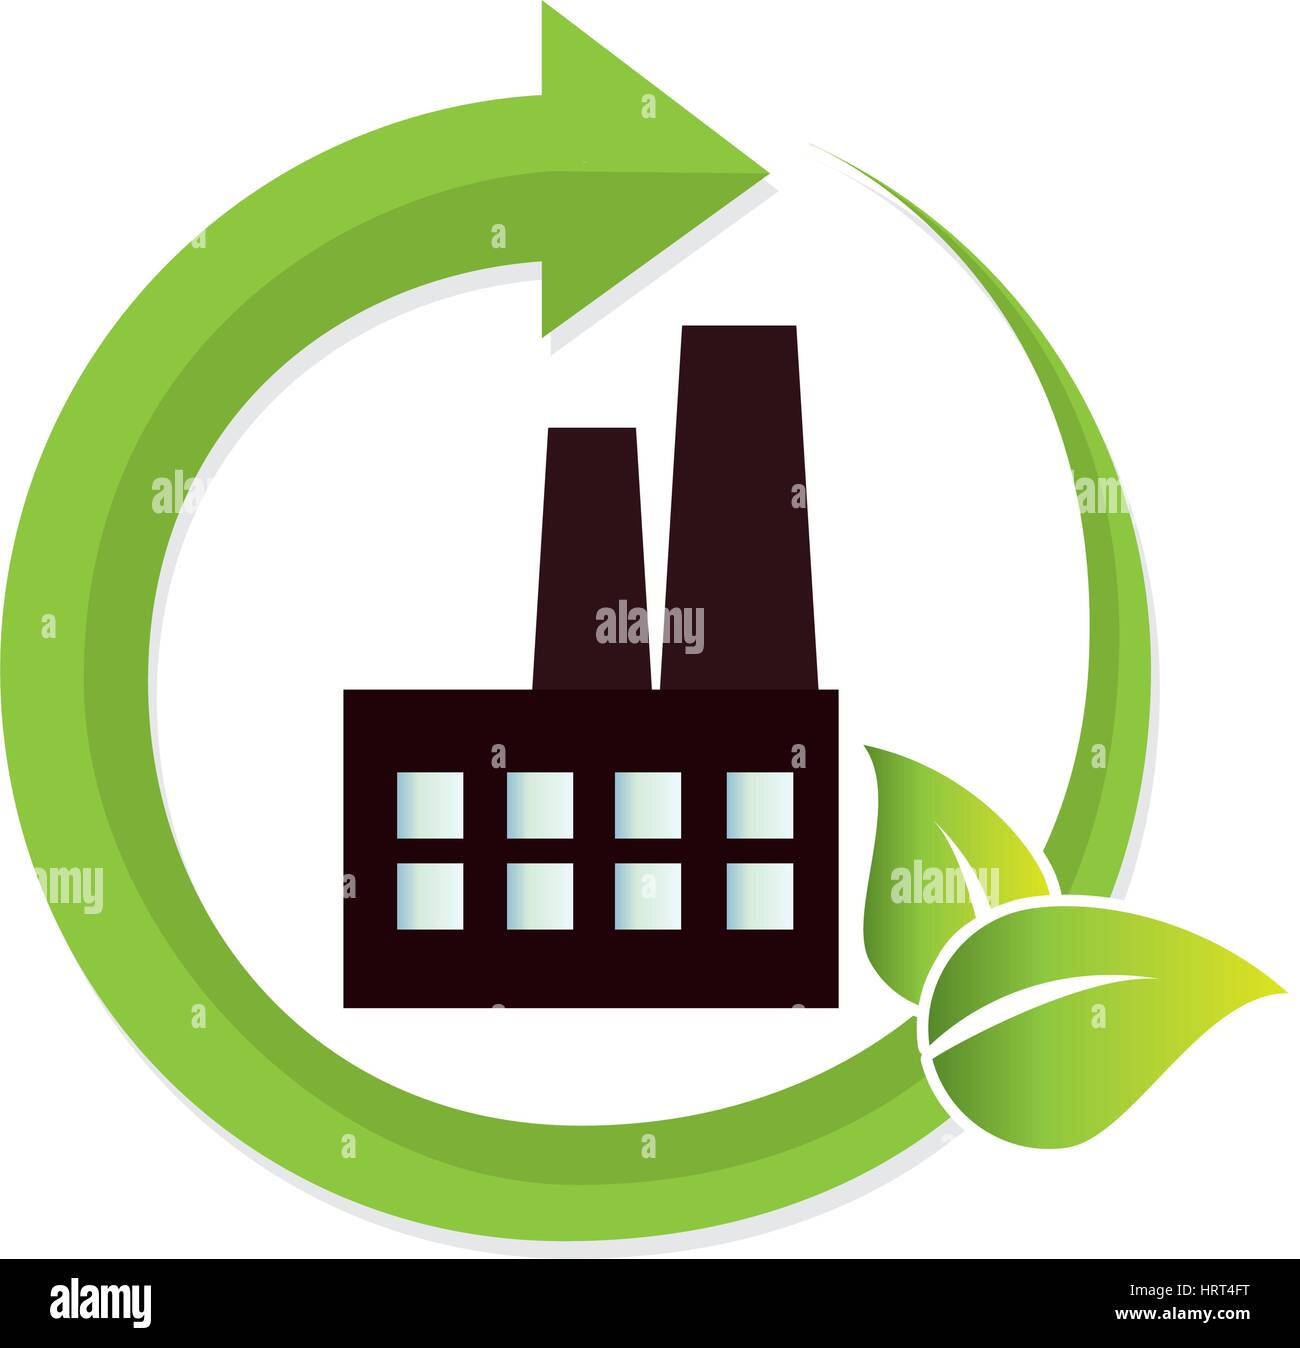 green factory building icon stock vector art illustration vector image 135140092 alamy. Black Bedroom Furniture Sets. Home Design Ideas